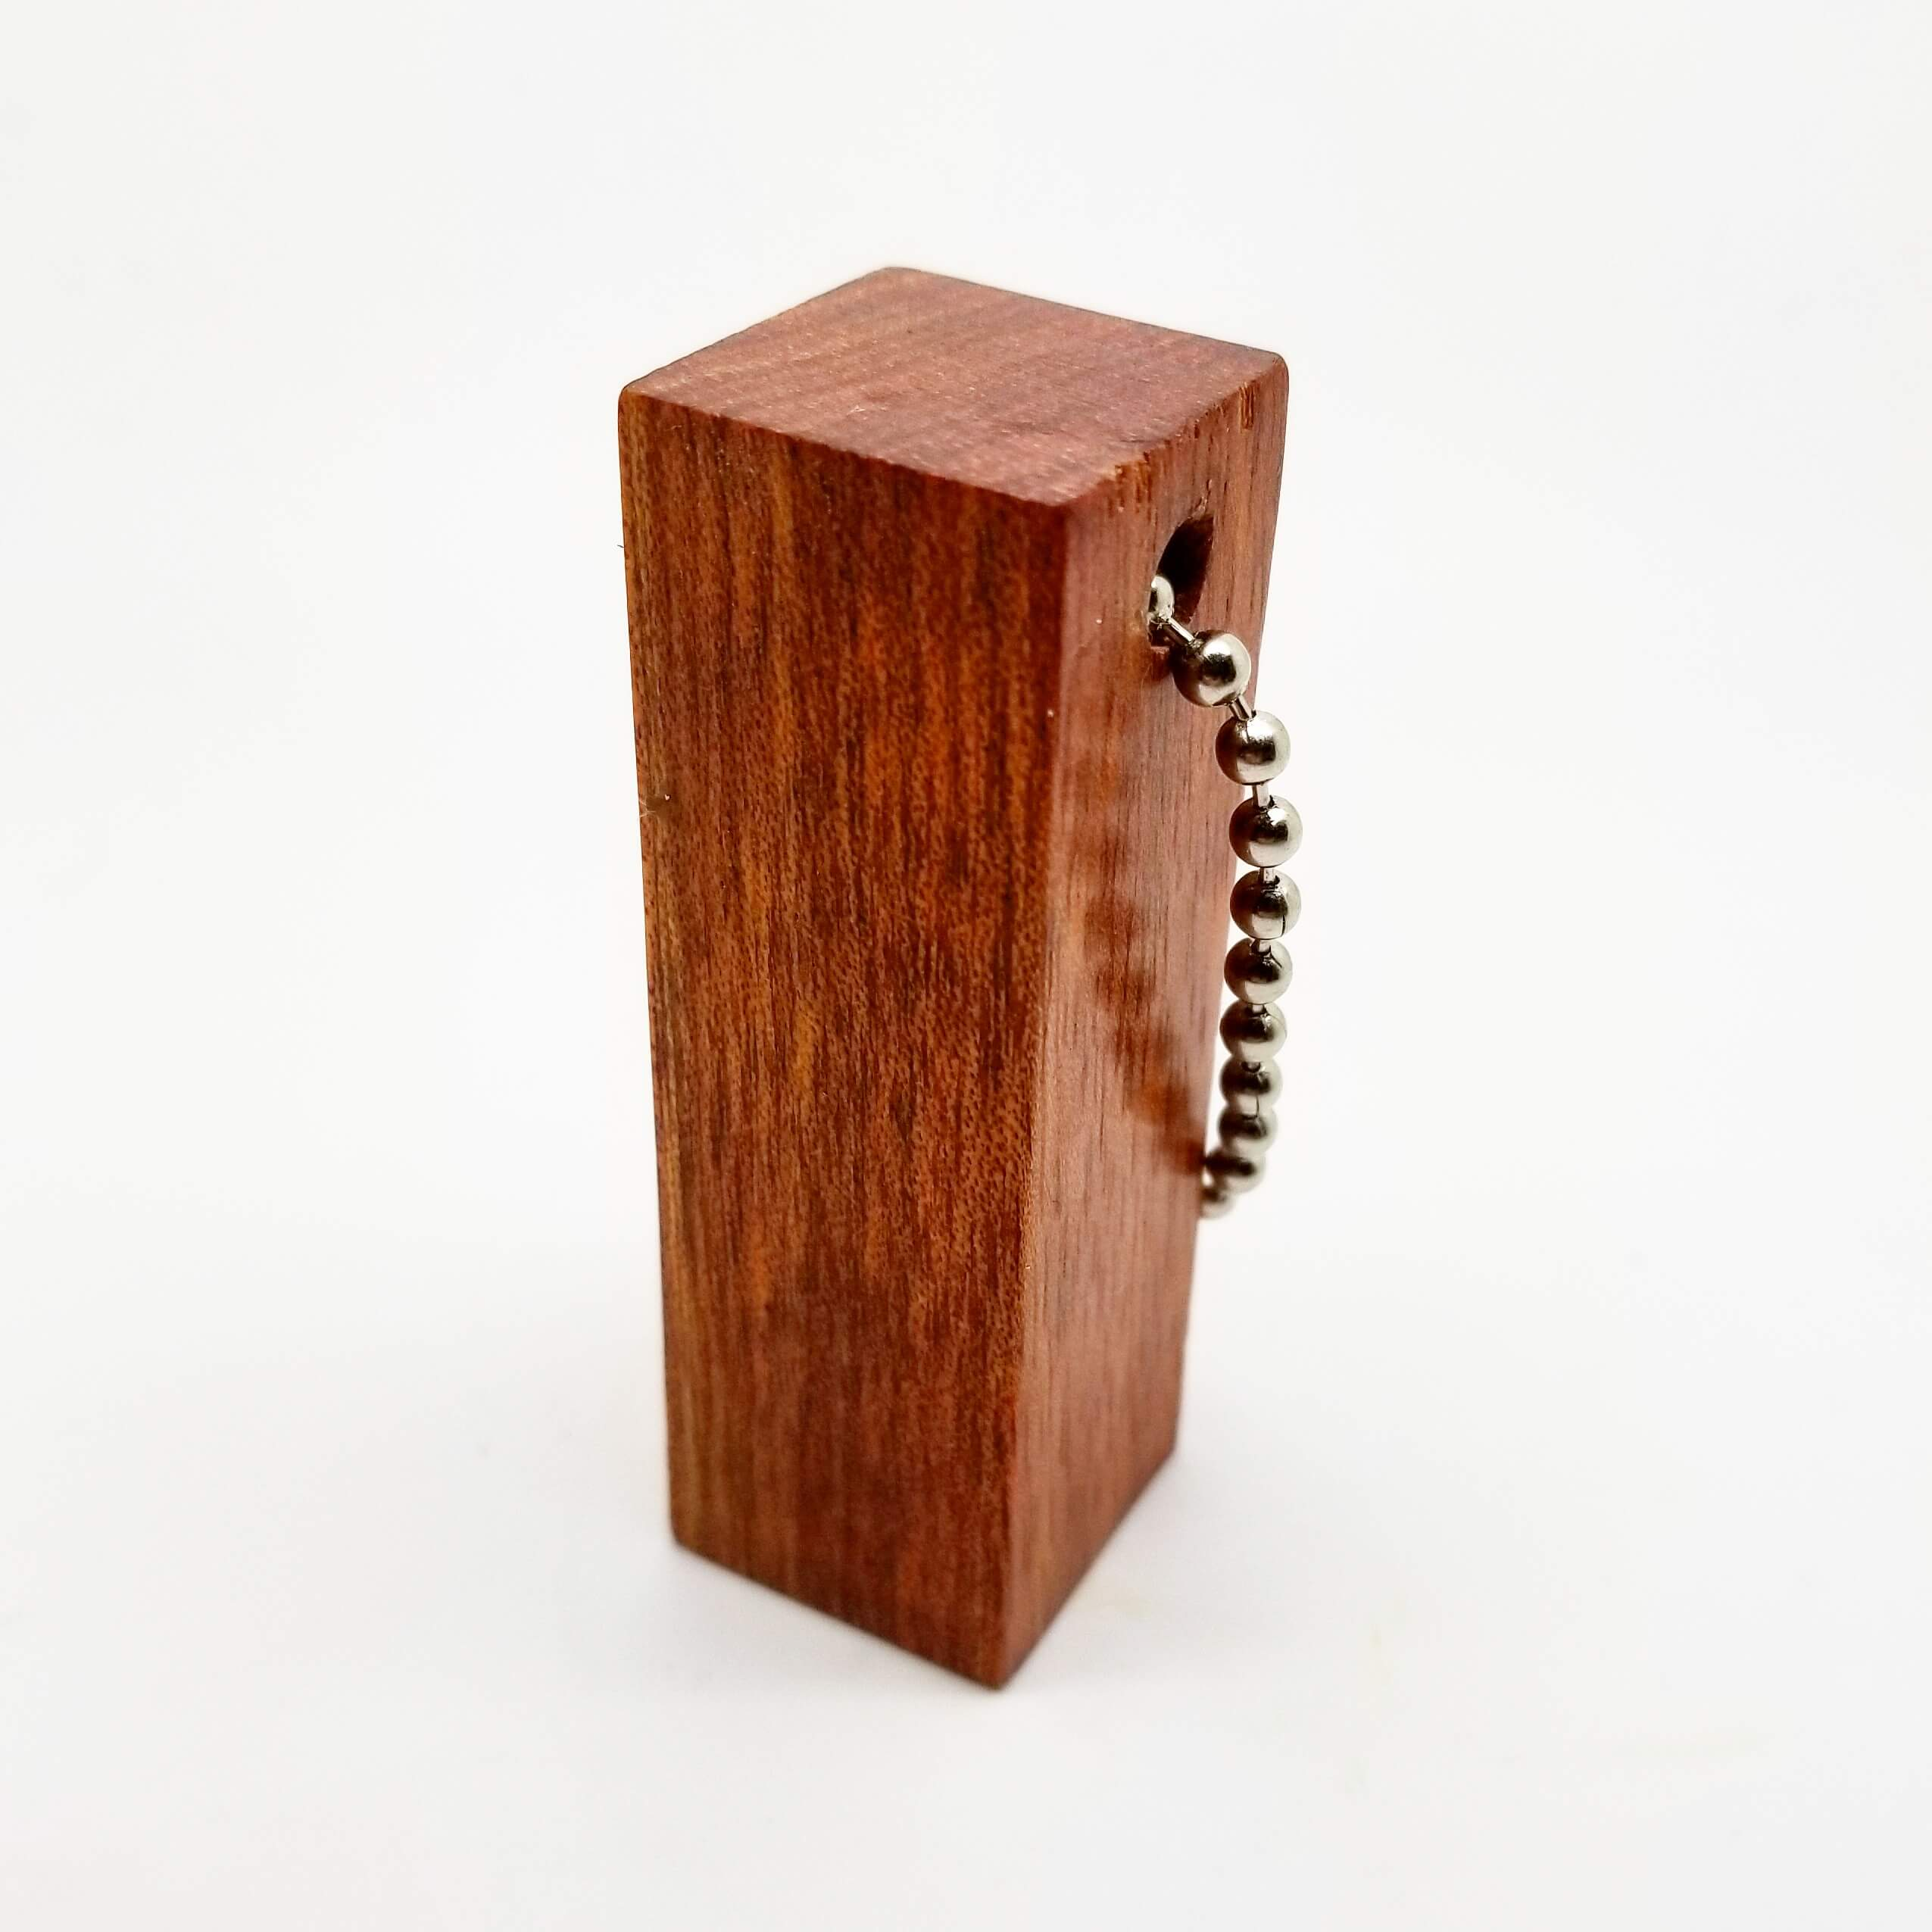 Redwood Block Keychain